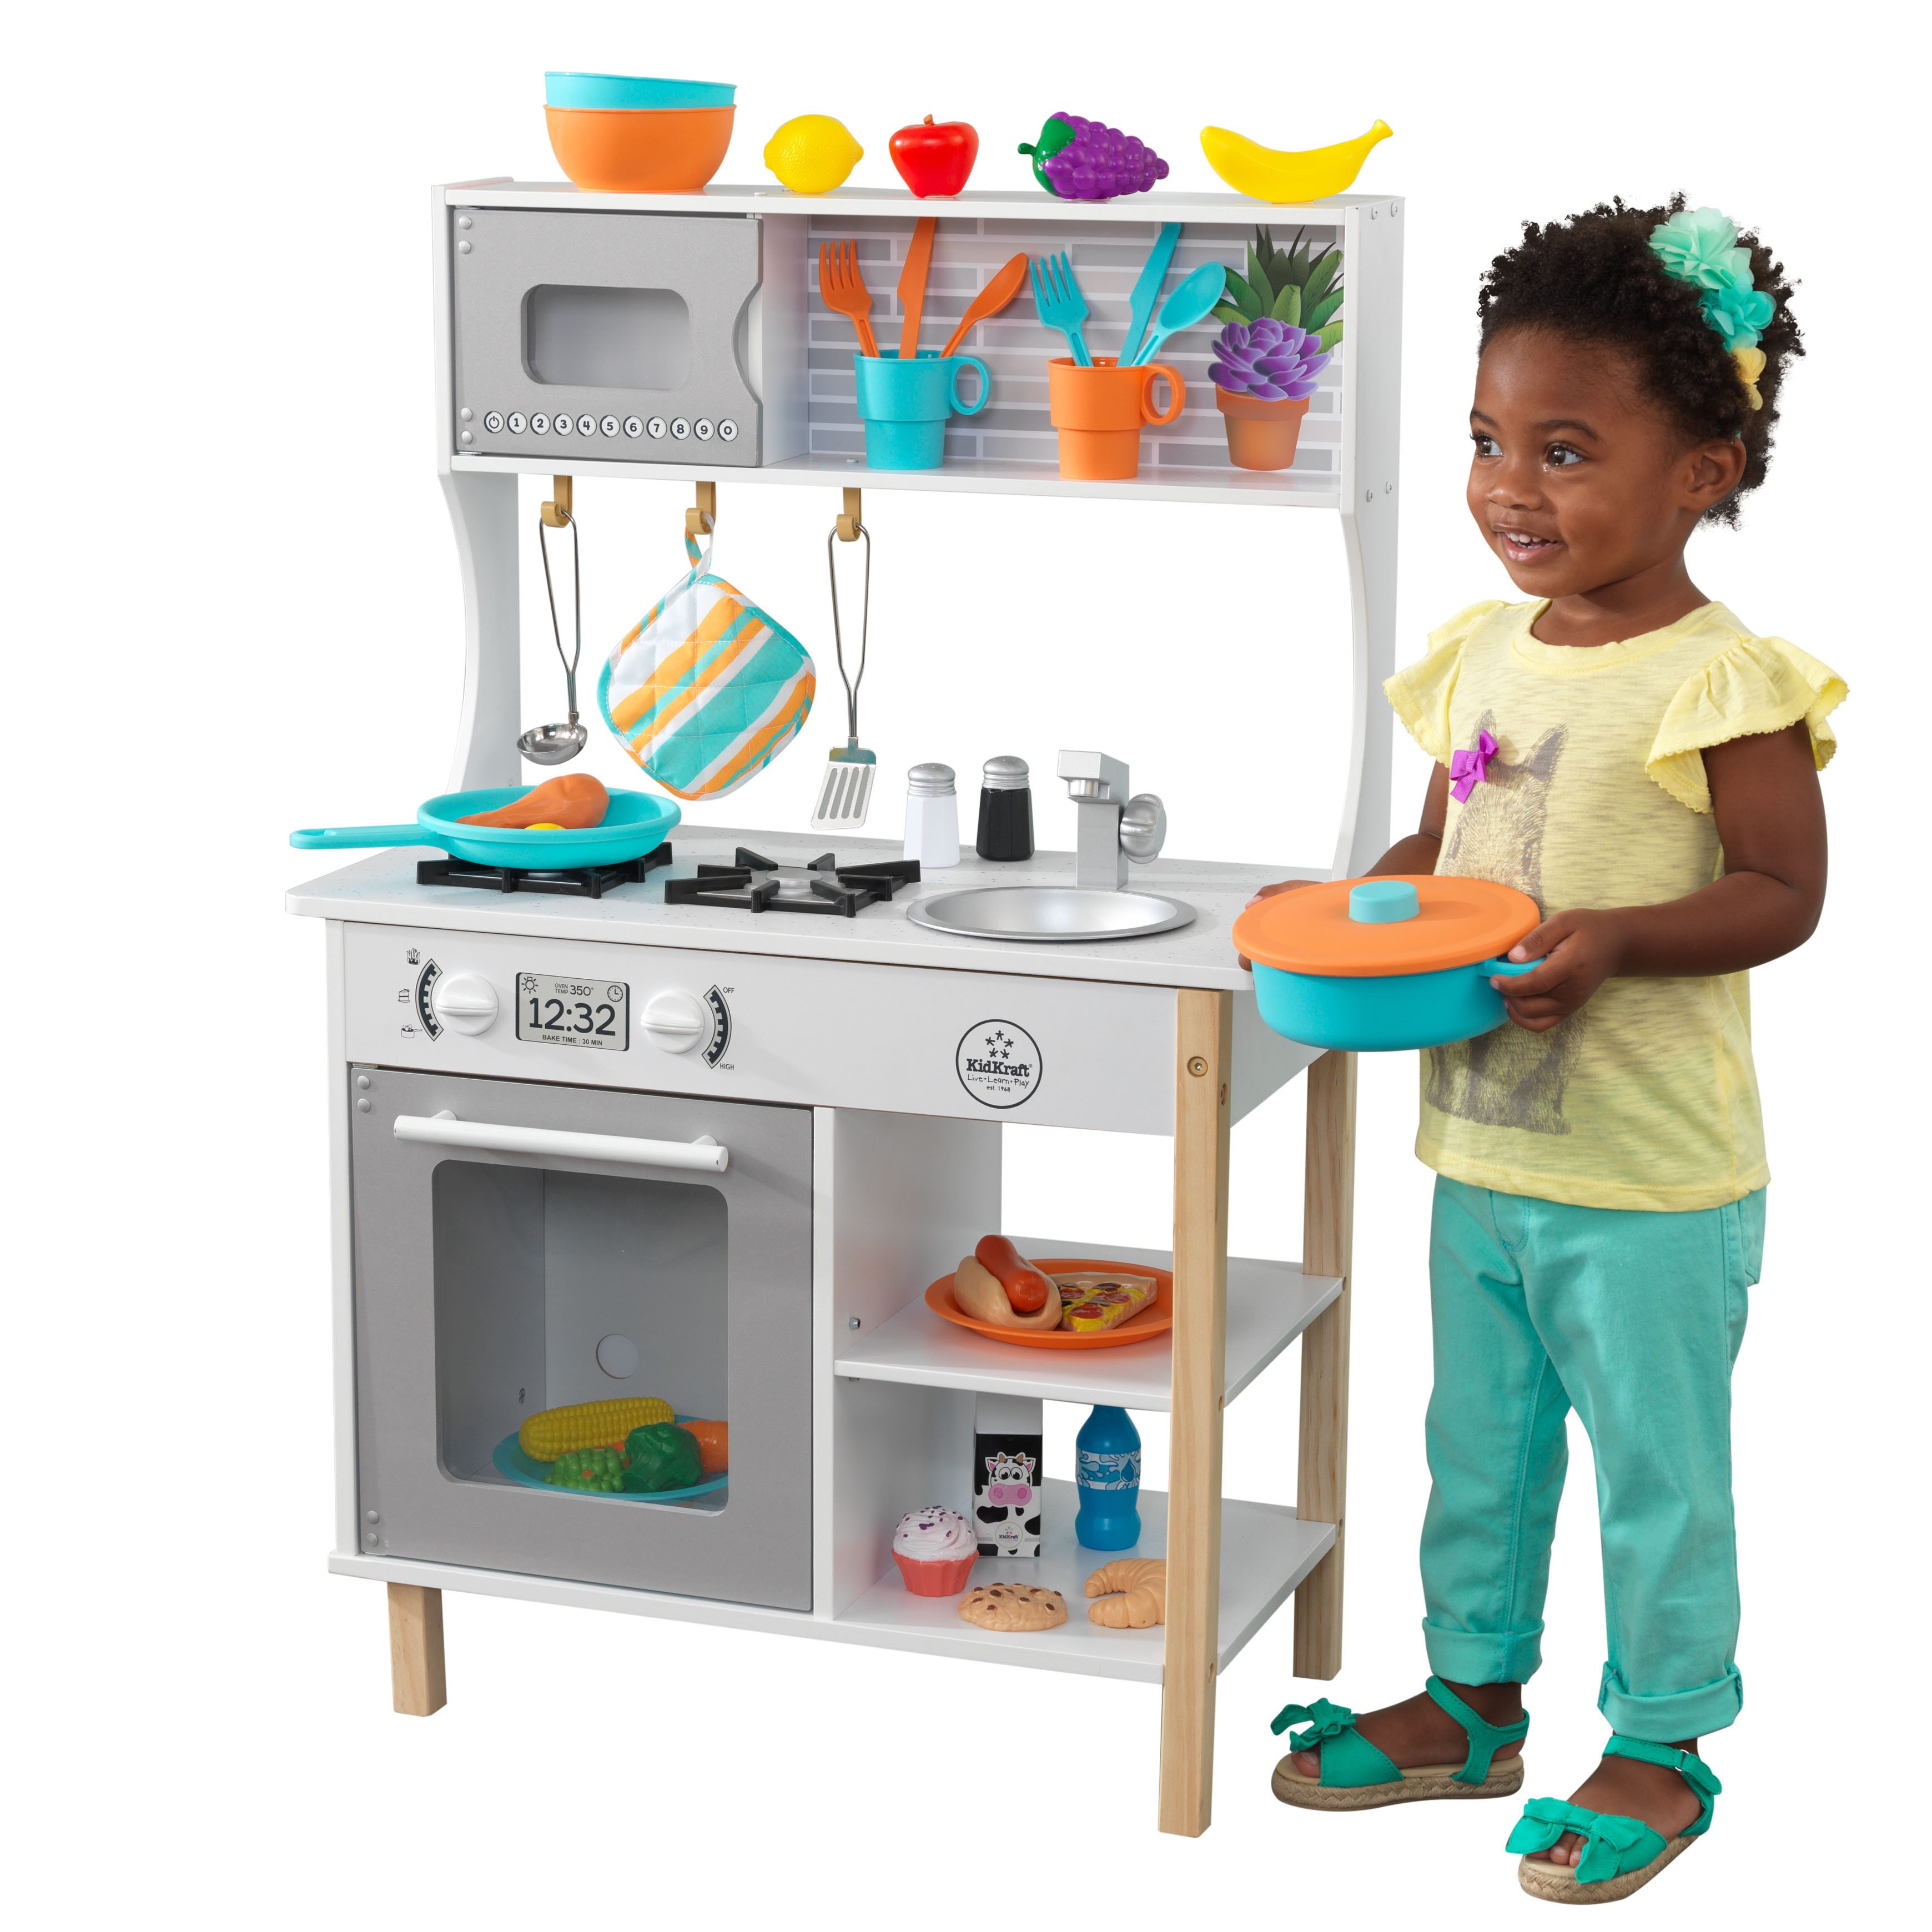 KidKraft All Time Play Kitchen with Accessories Only $59.99